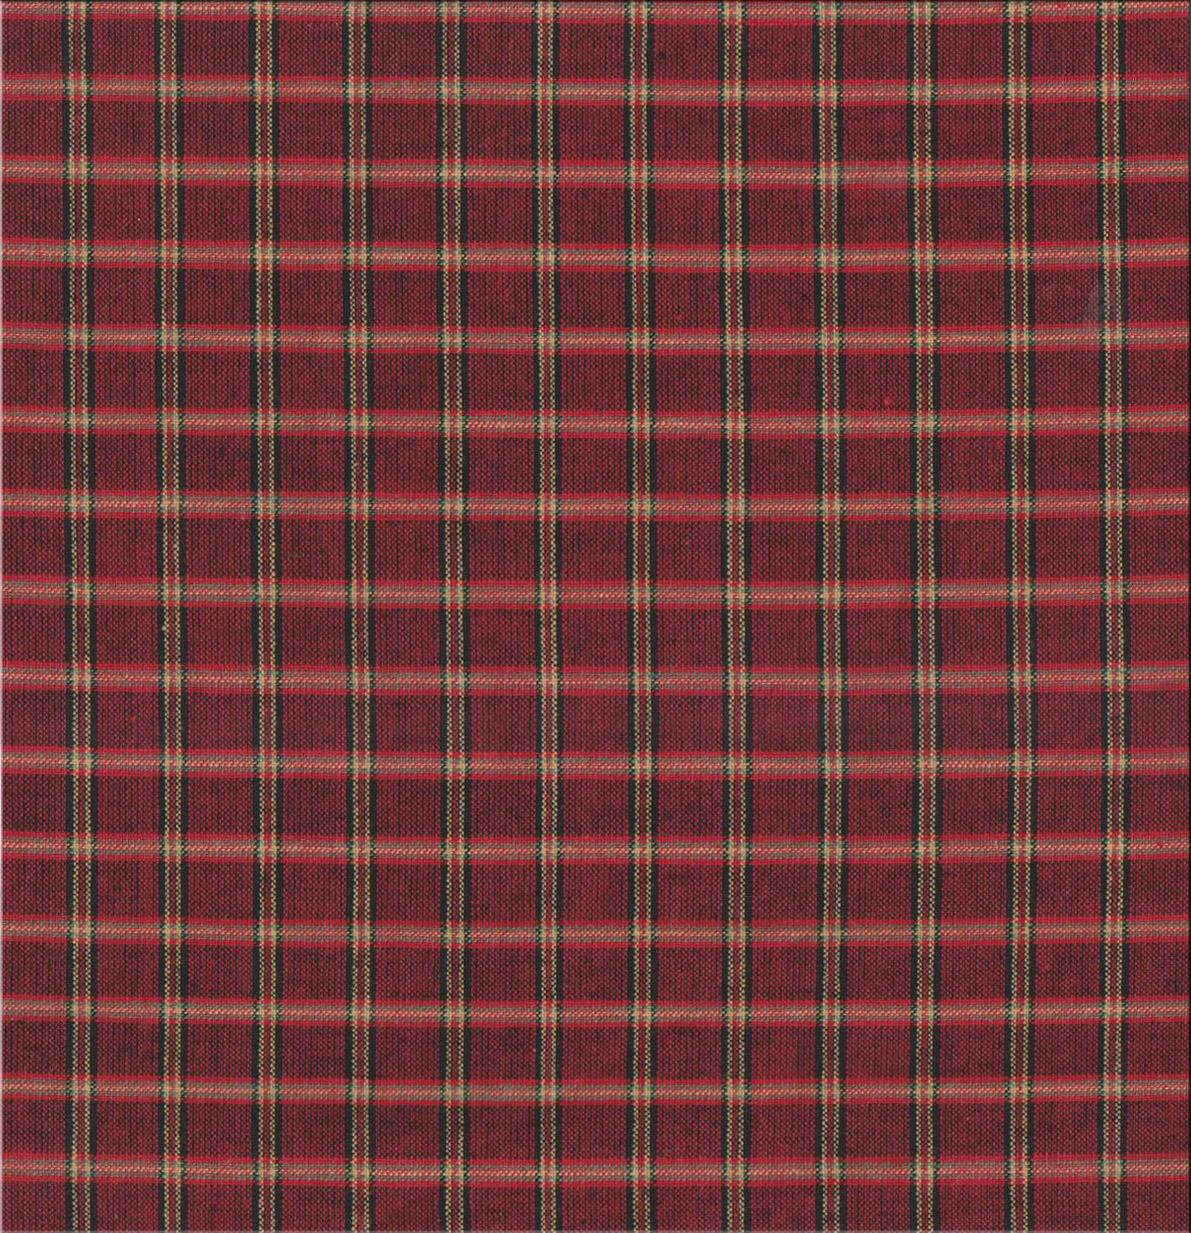 """Rustic Red Large Check Fabric Swatch 4"""" x 4"""""""